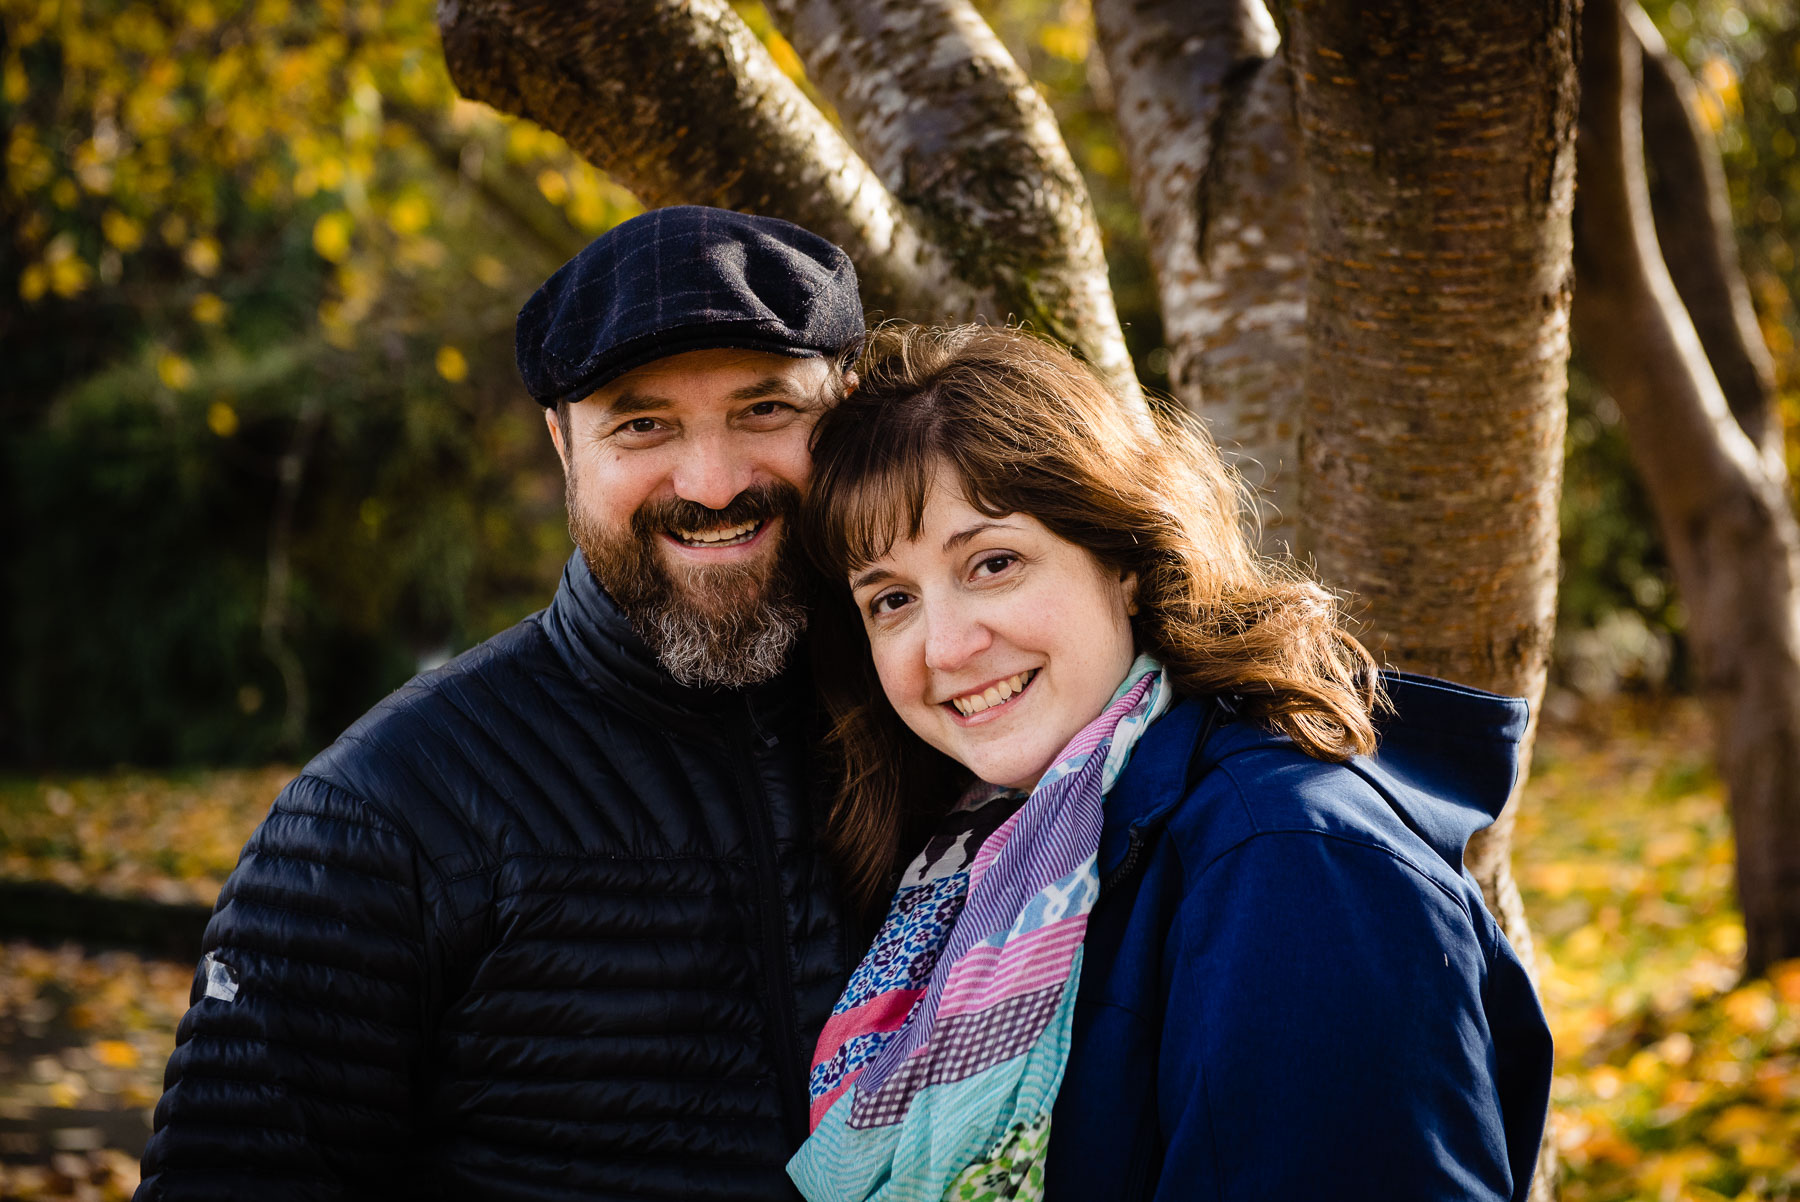 portrait of parents in park